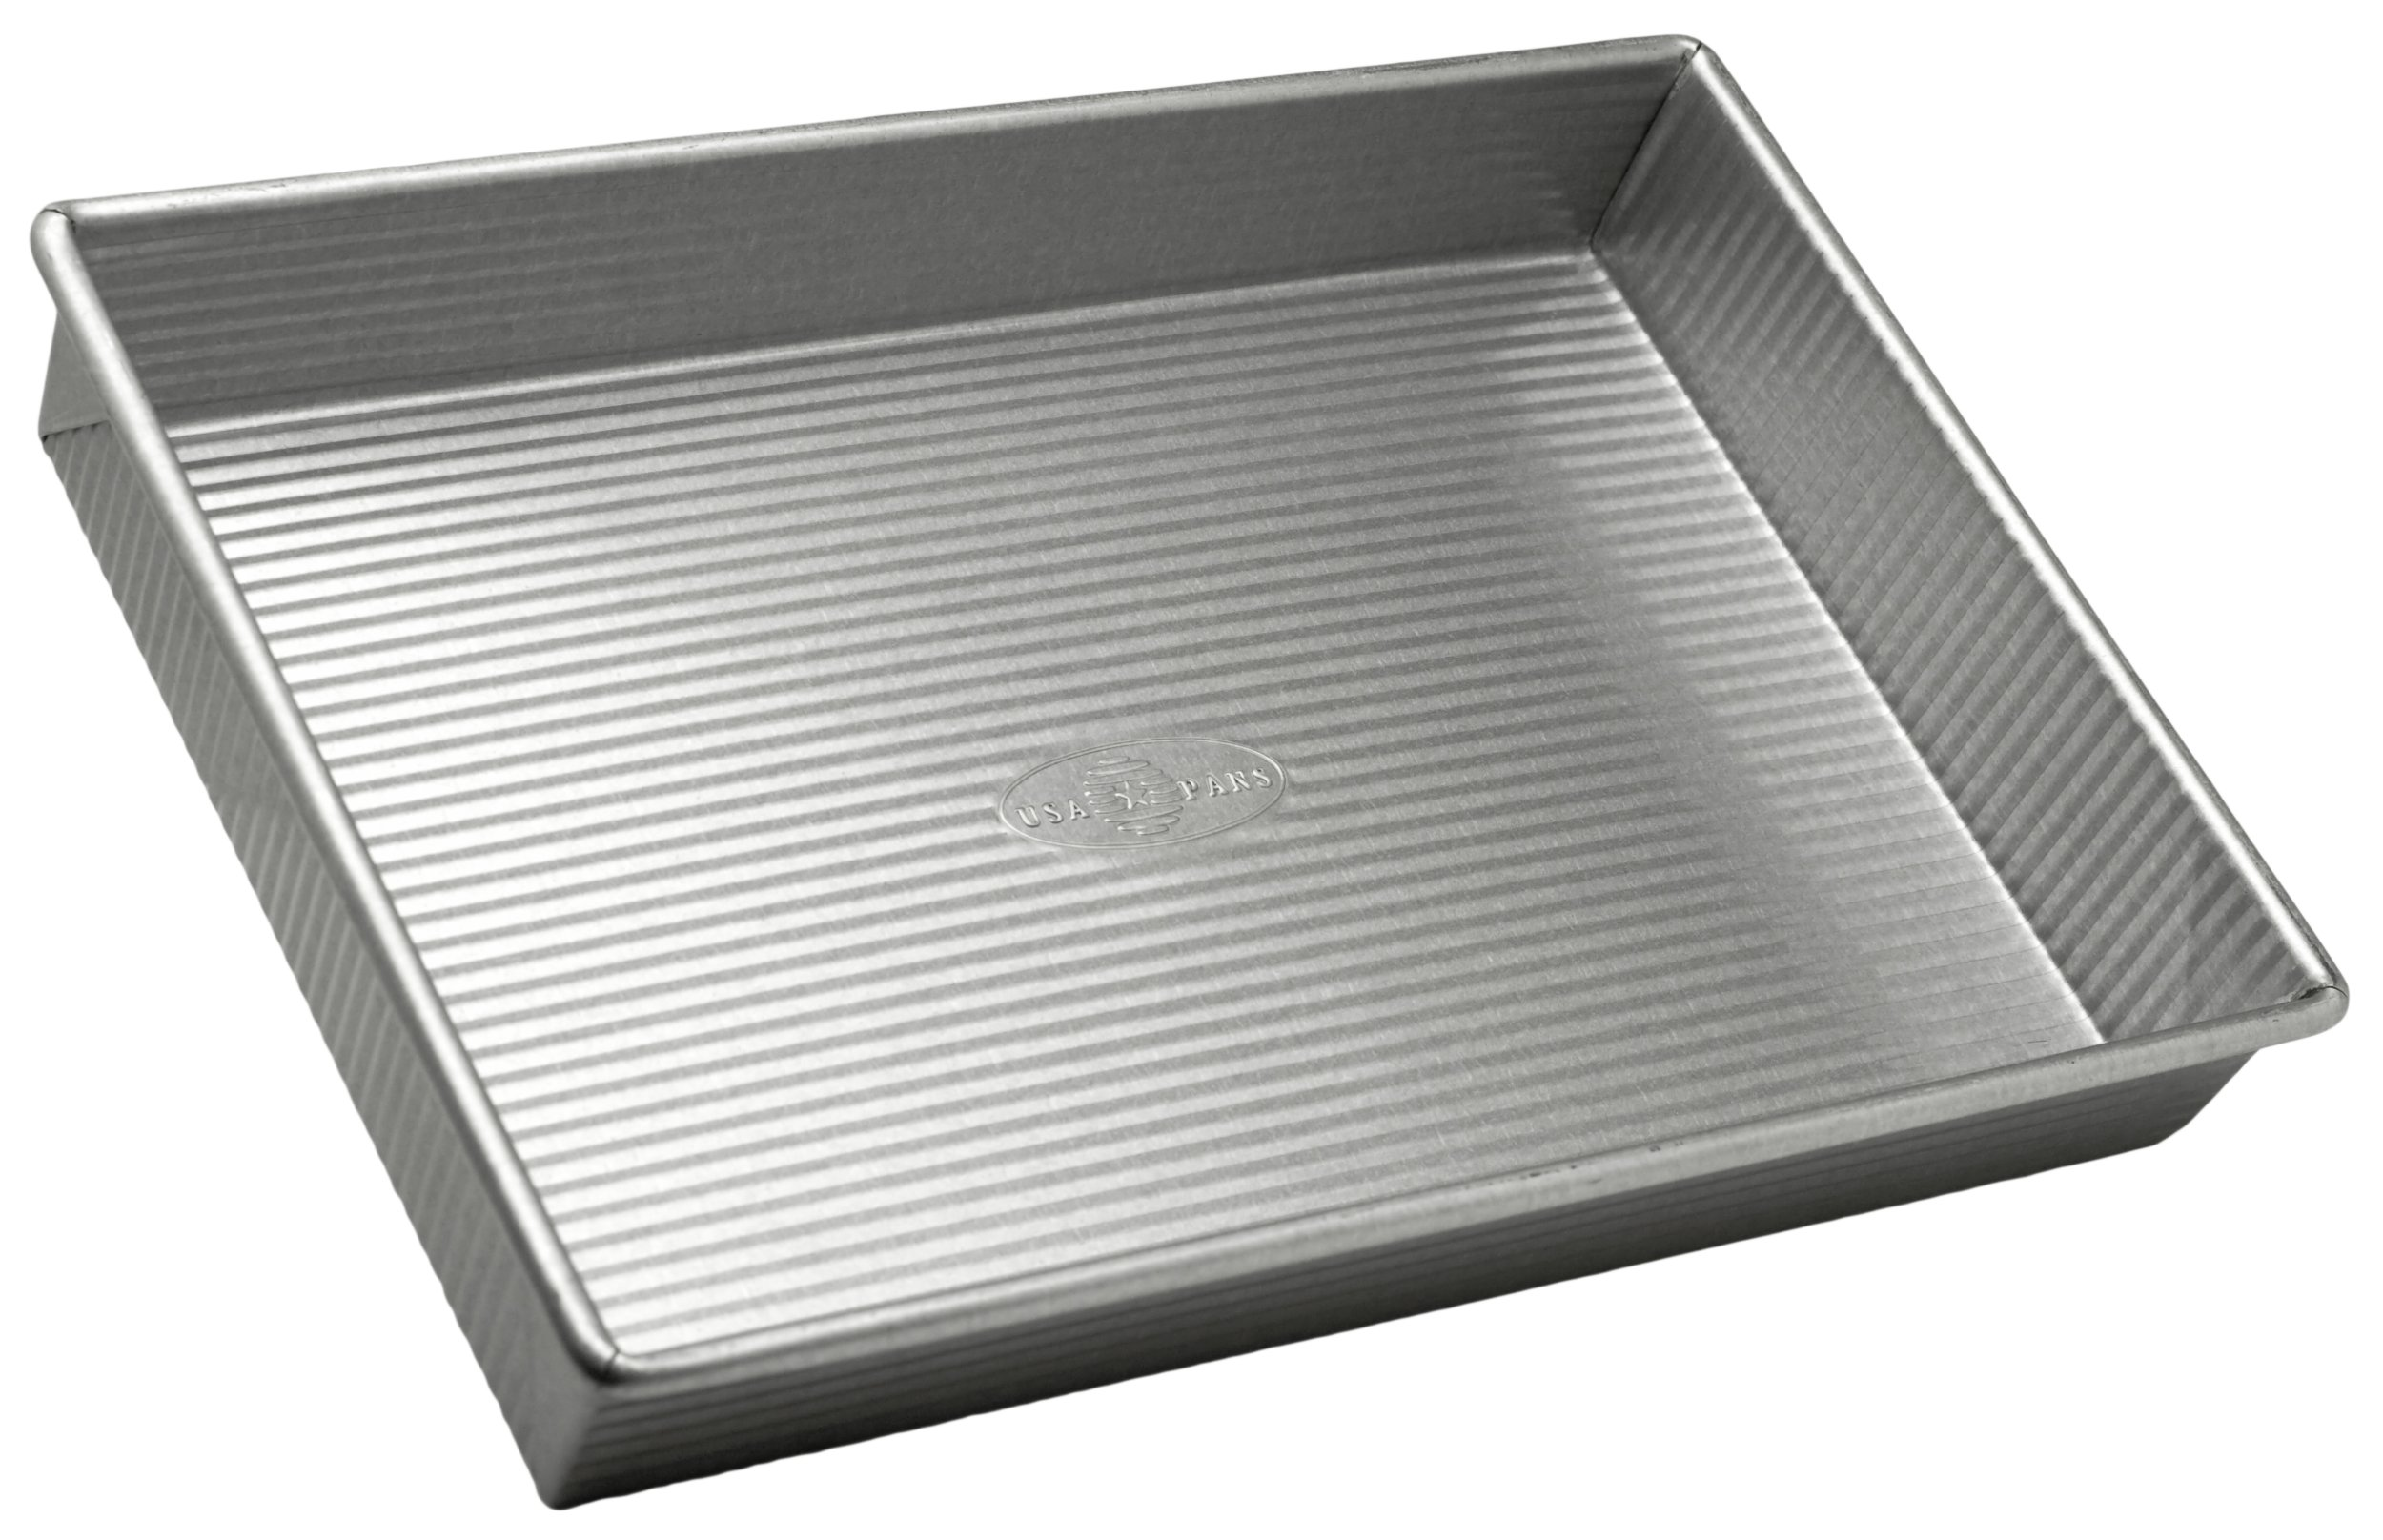 USA Pan Bakeware Rectangular Cake Pan, 9 x 13 inch, Nonstick & Quick Release Coating, Made in the USA from Aluminized Steel by USA Pan (Image #1)